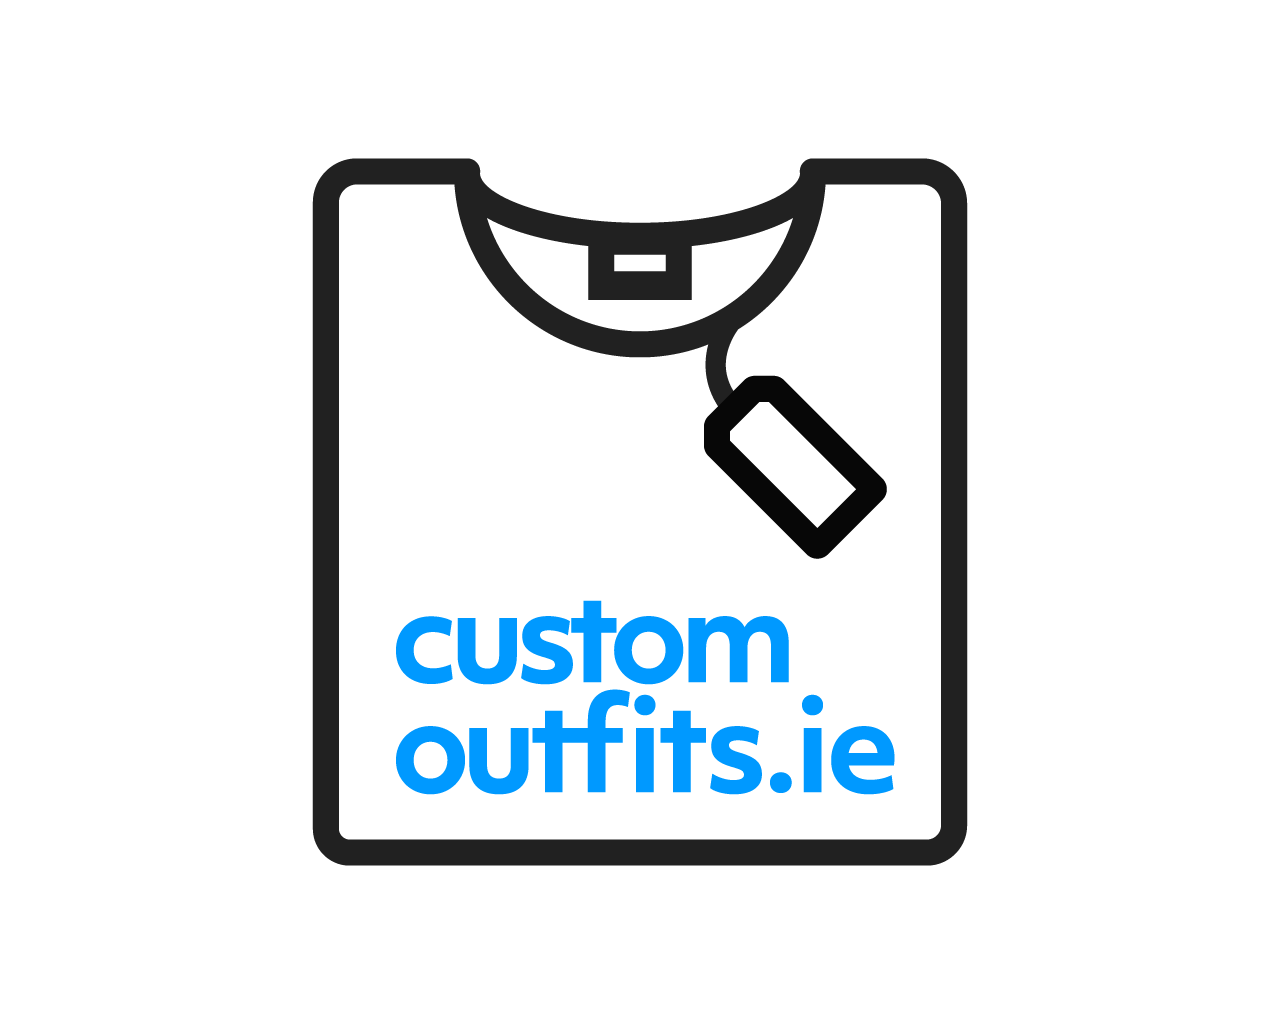 CustomOutfits.ie